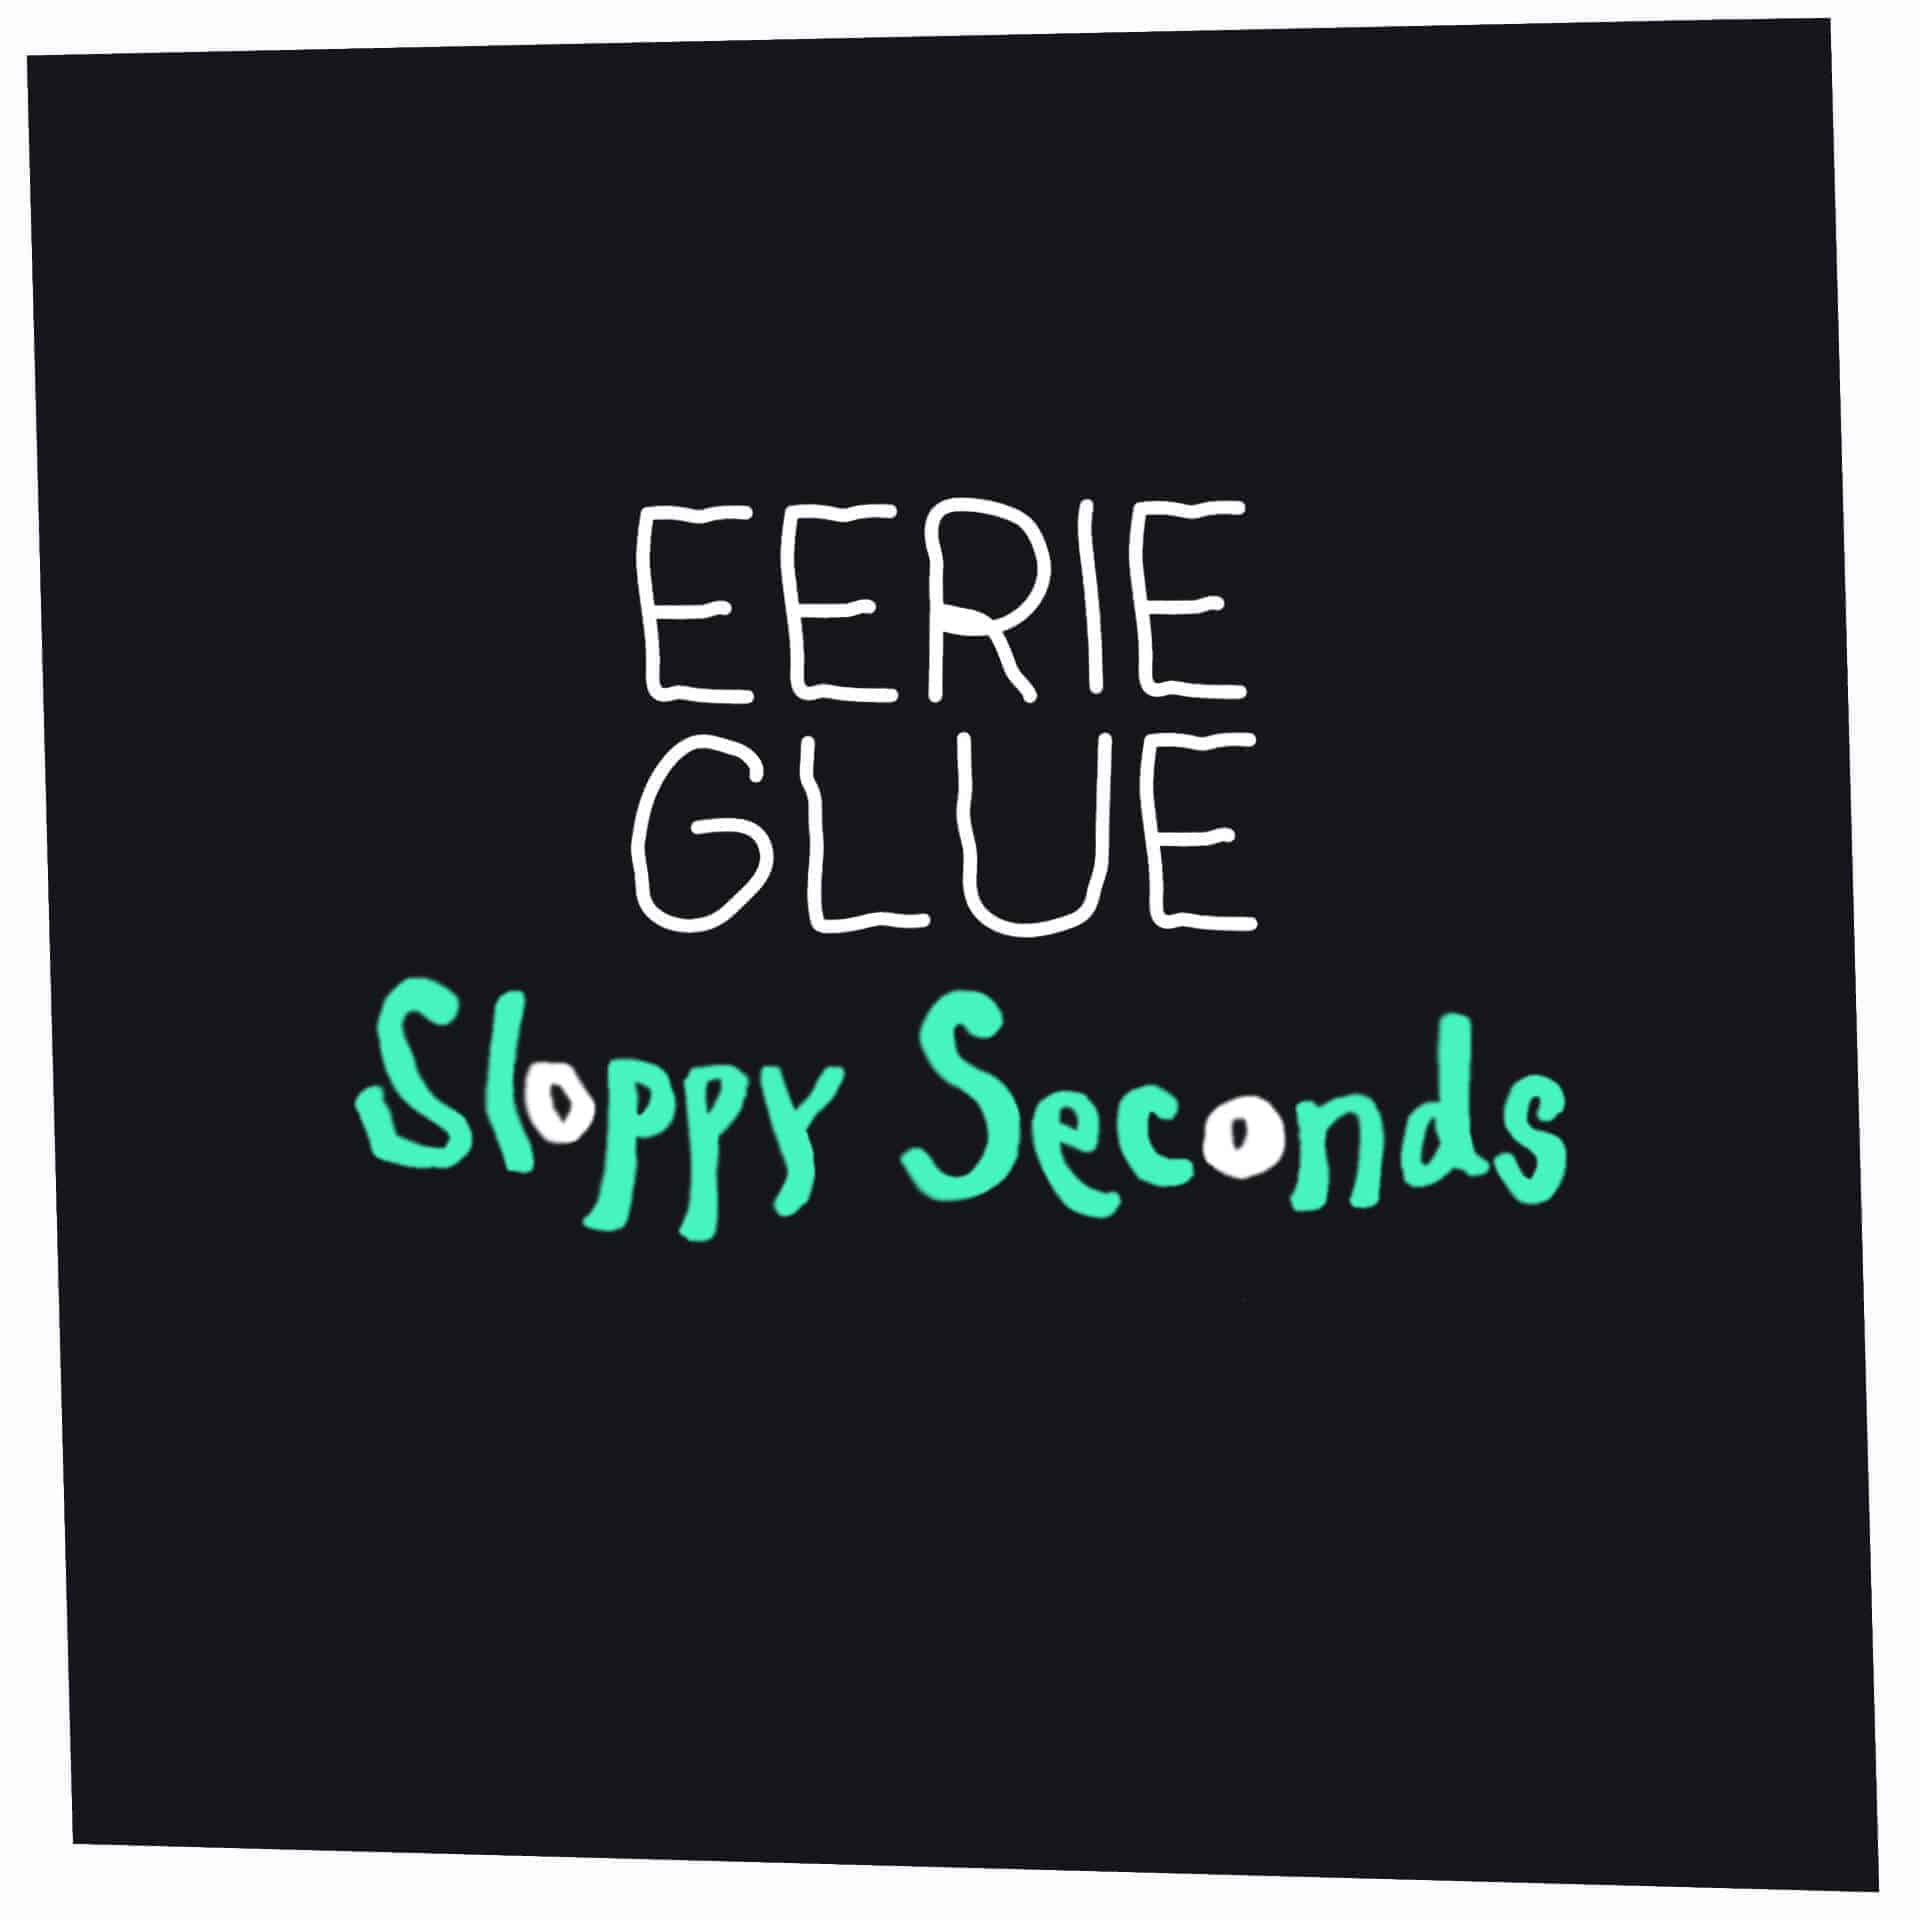 Eerlie Glue - Sloppy Seconds Album Cover